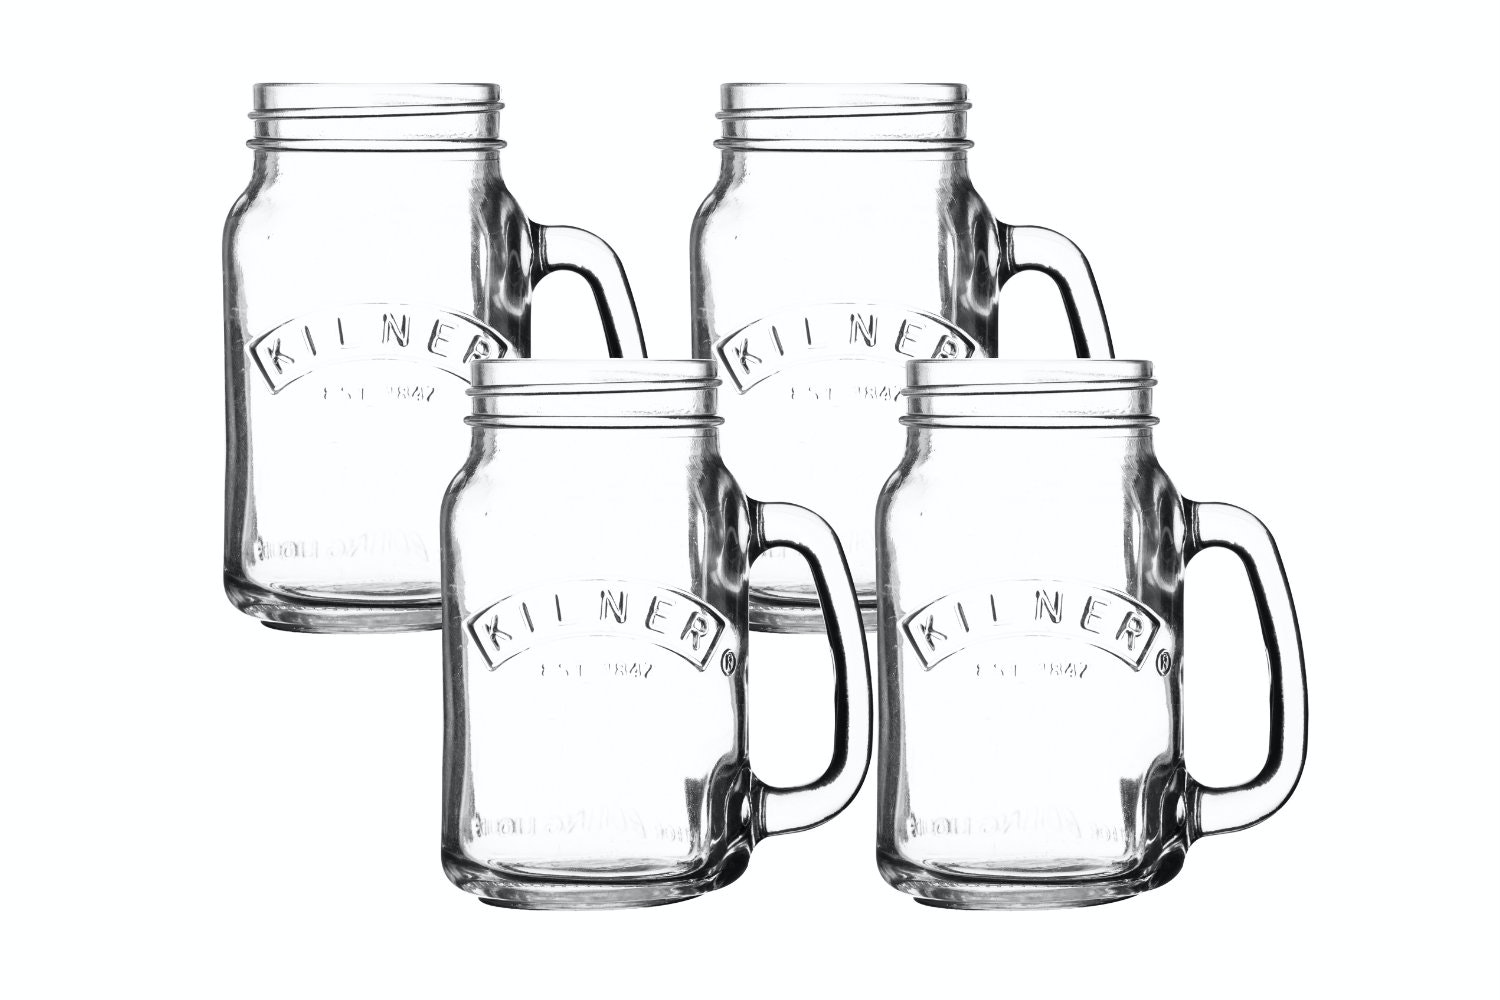 Kilner | Set of 4 Handled Jars